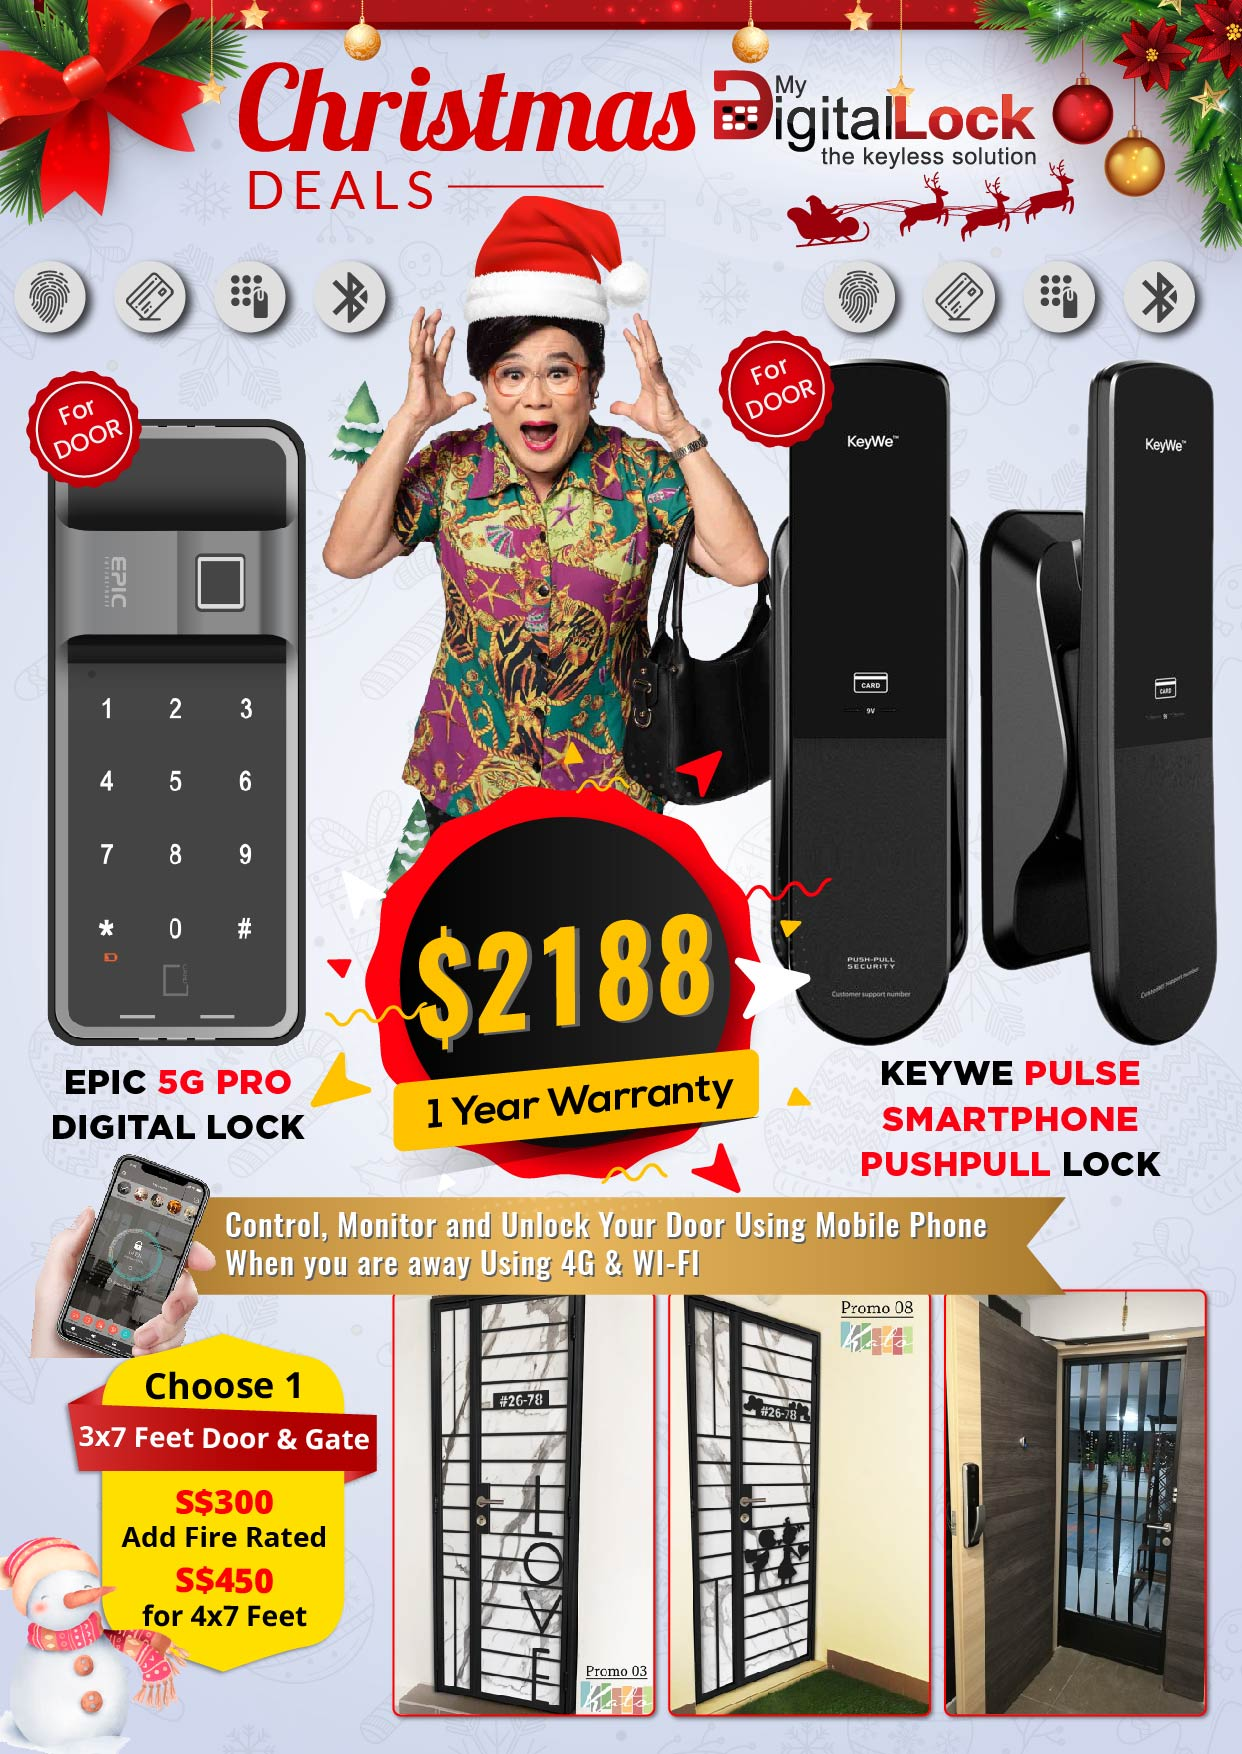 My Digital Lock EPIC 5G PRO and KeyWe Pulse PushPull Digital Lock and Door and Gate Christmas Promotions 2019